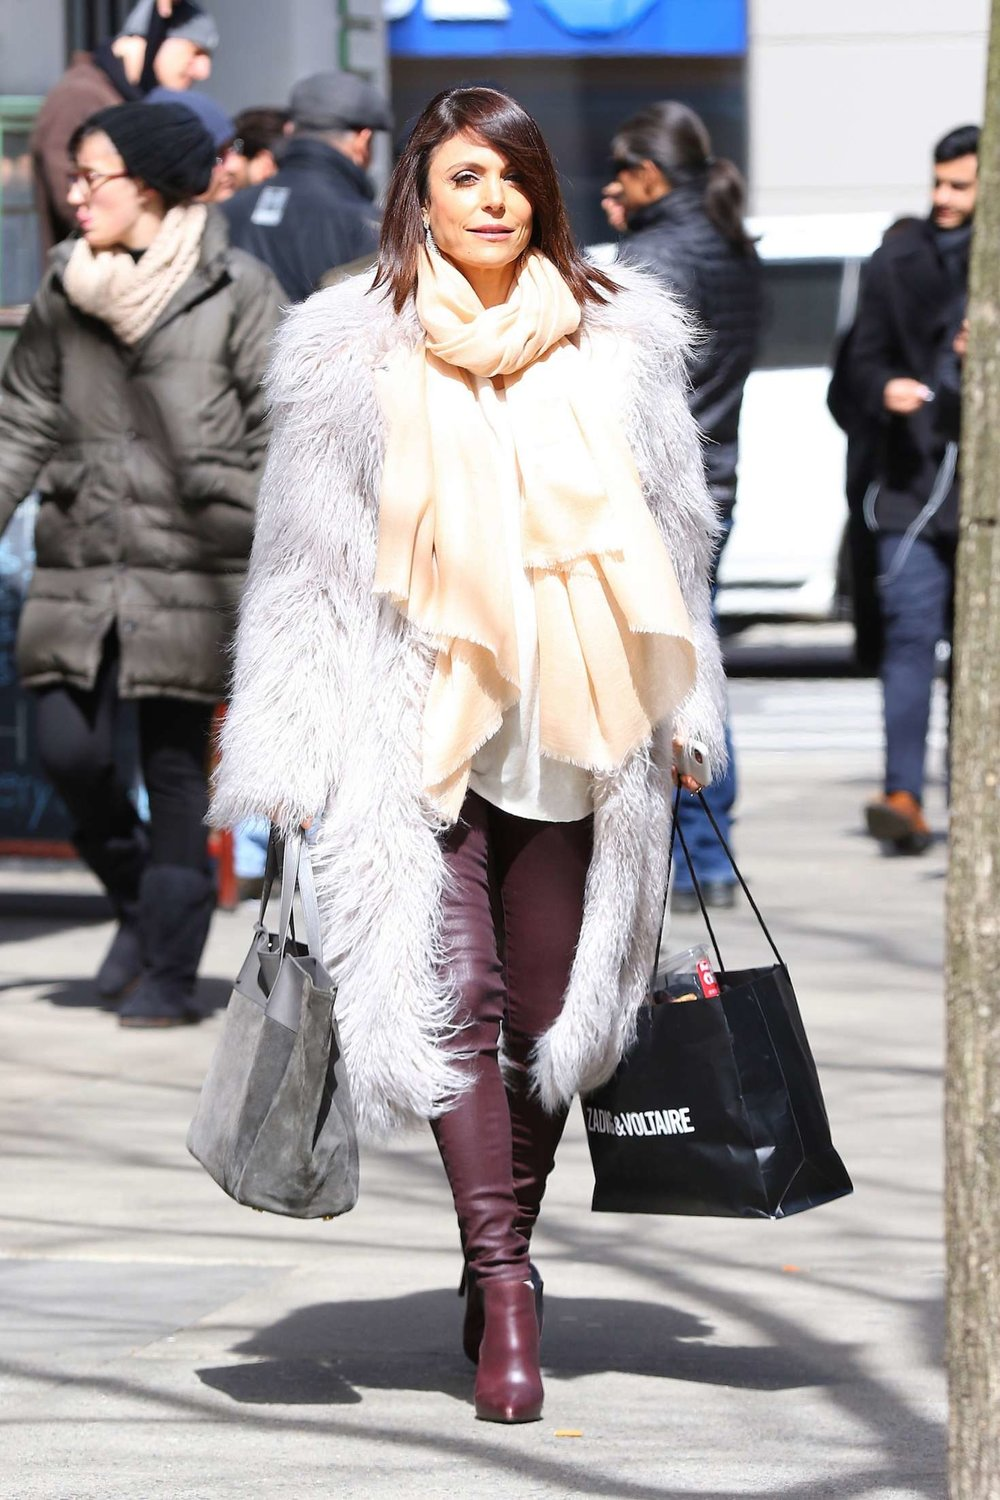 Bethenny-Frankel-in-Fur-Coat-and-Leather-Pants-shopping--11.jpg